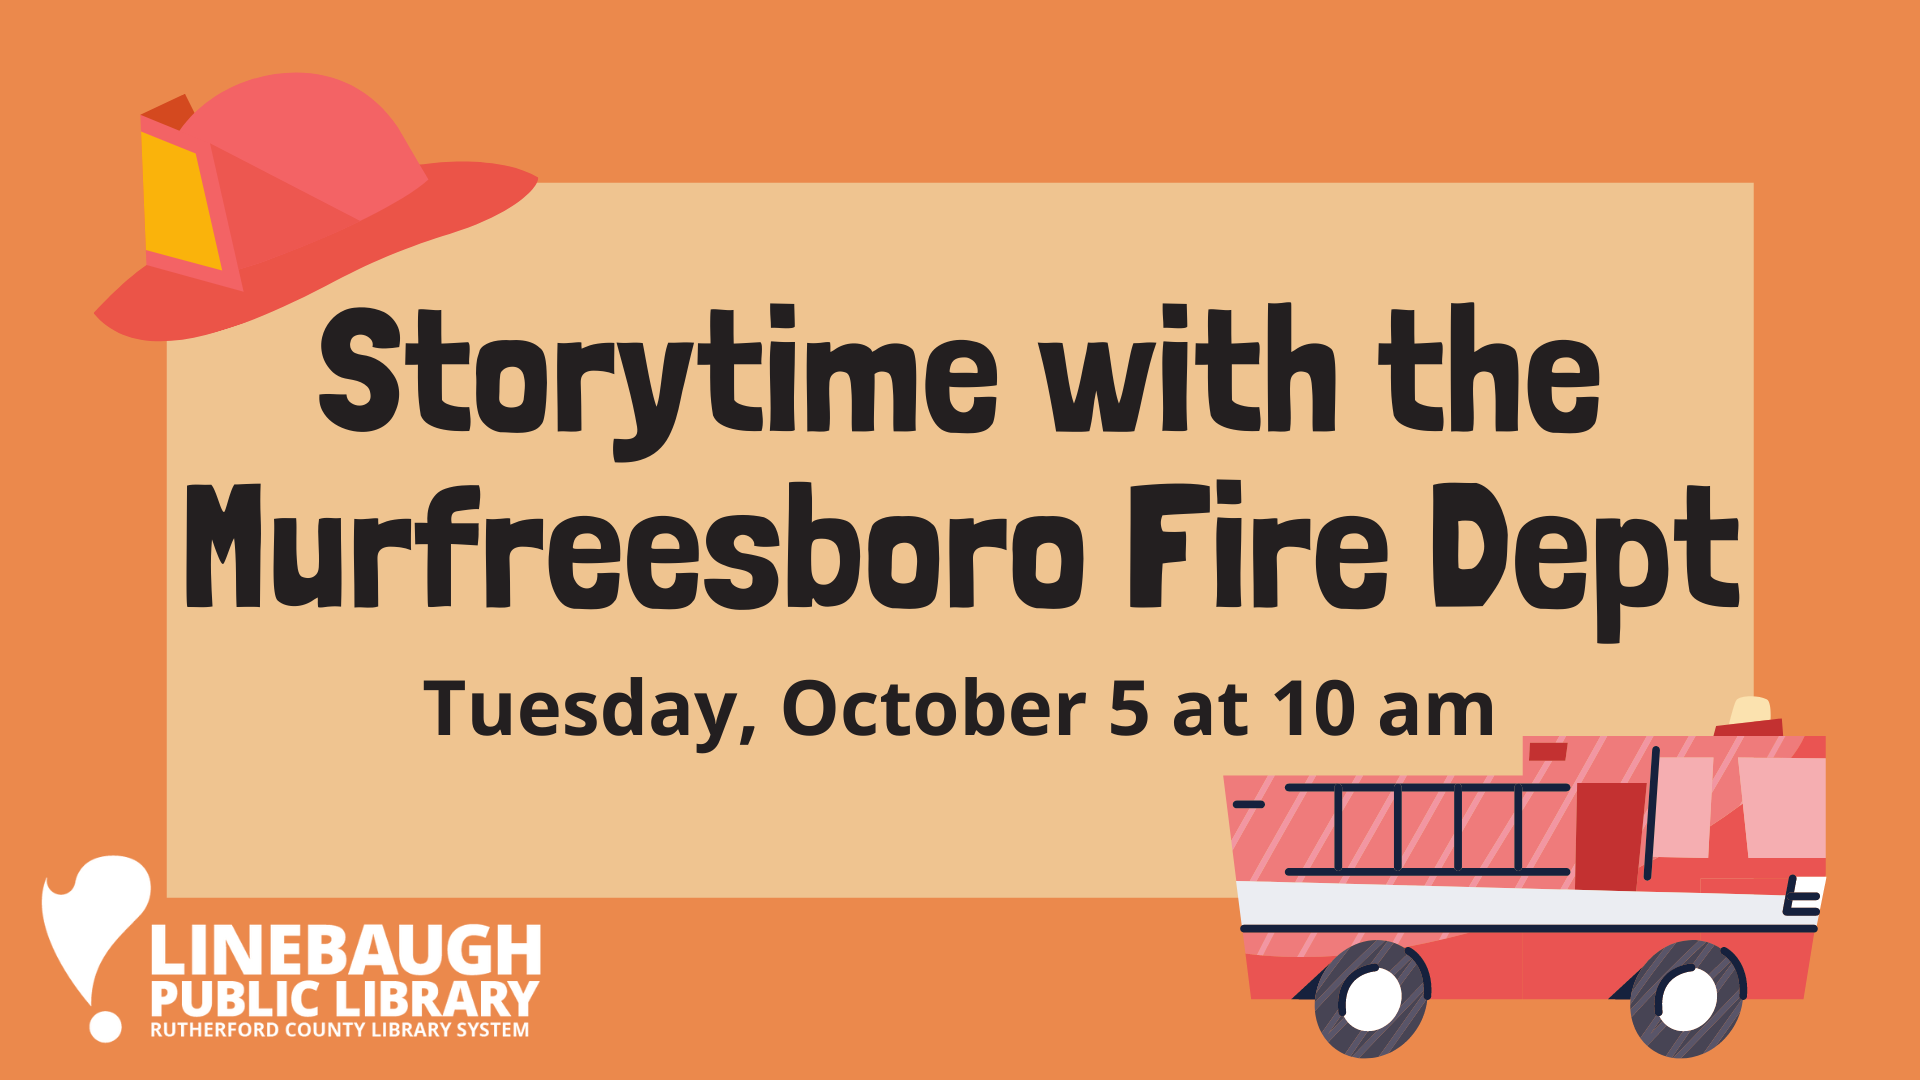 Storytime at Linebaugh with the Murfreesboro Fire Dept